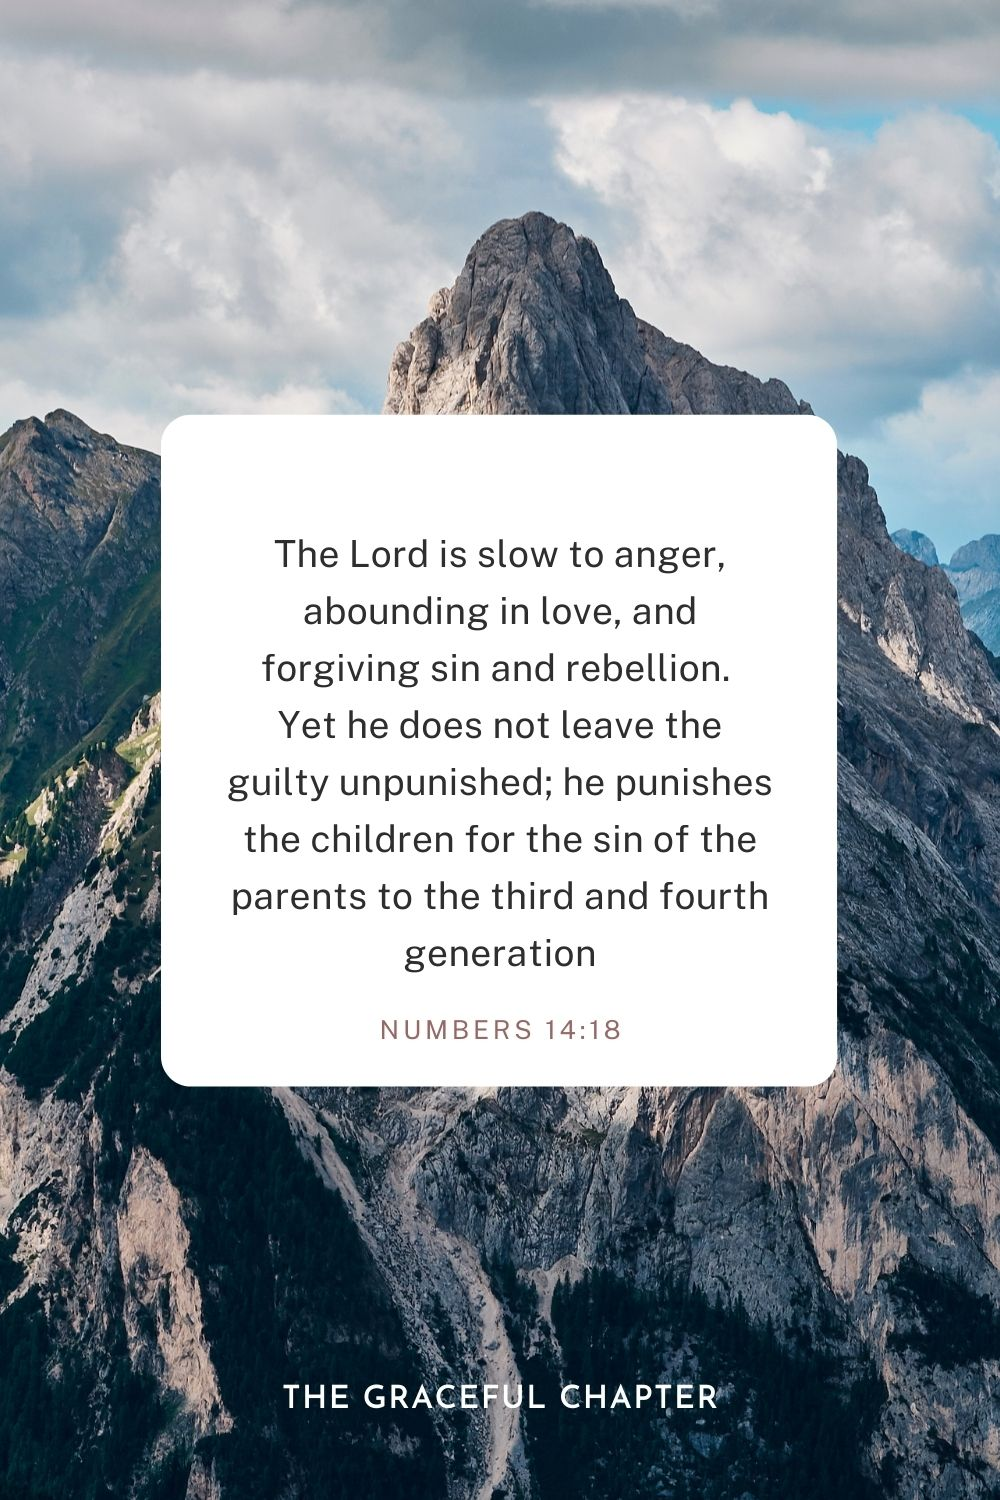 Numbers 14:18 Bible verses on forgiveness